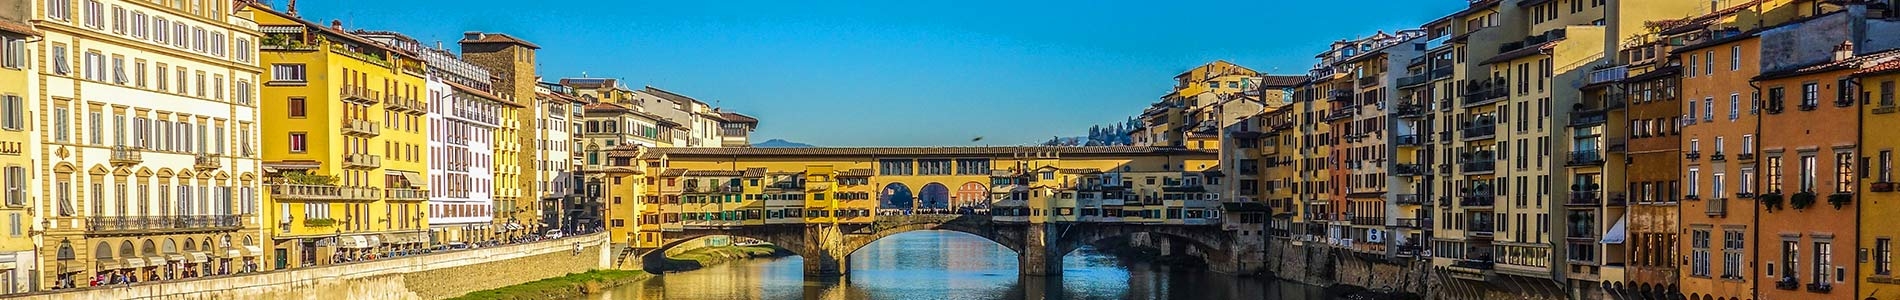 voyage-a-florence-2